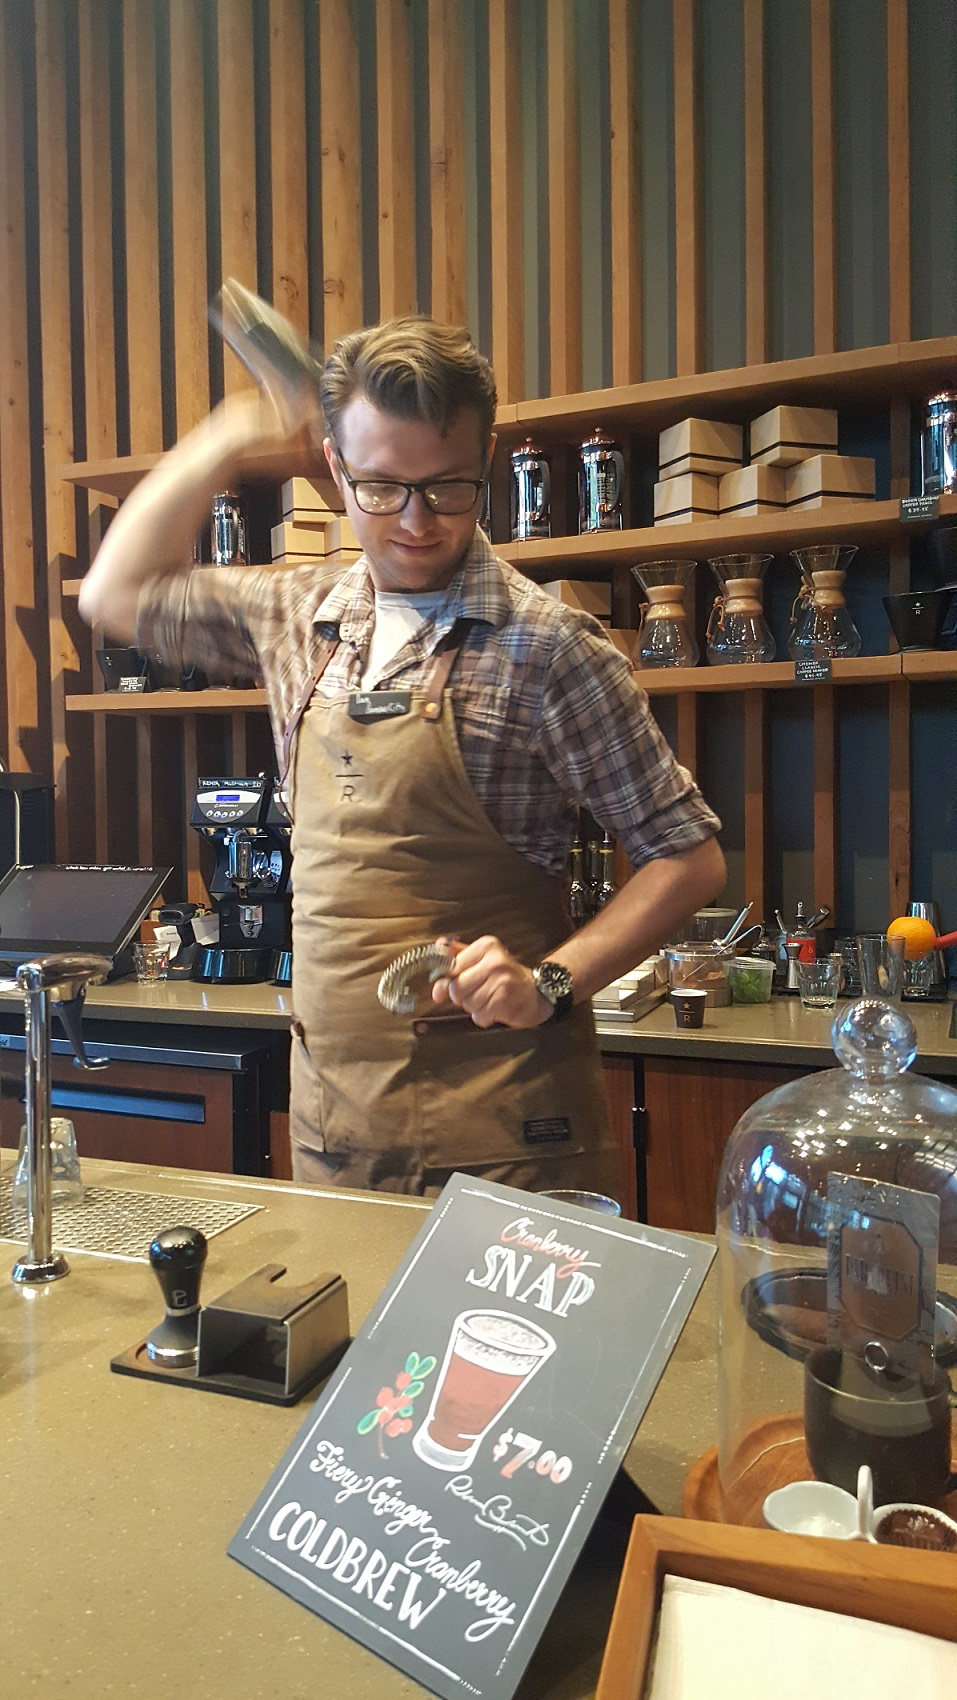 20160912_184542 Ian shakes the cranberry snap cold brew drink.jpg